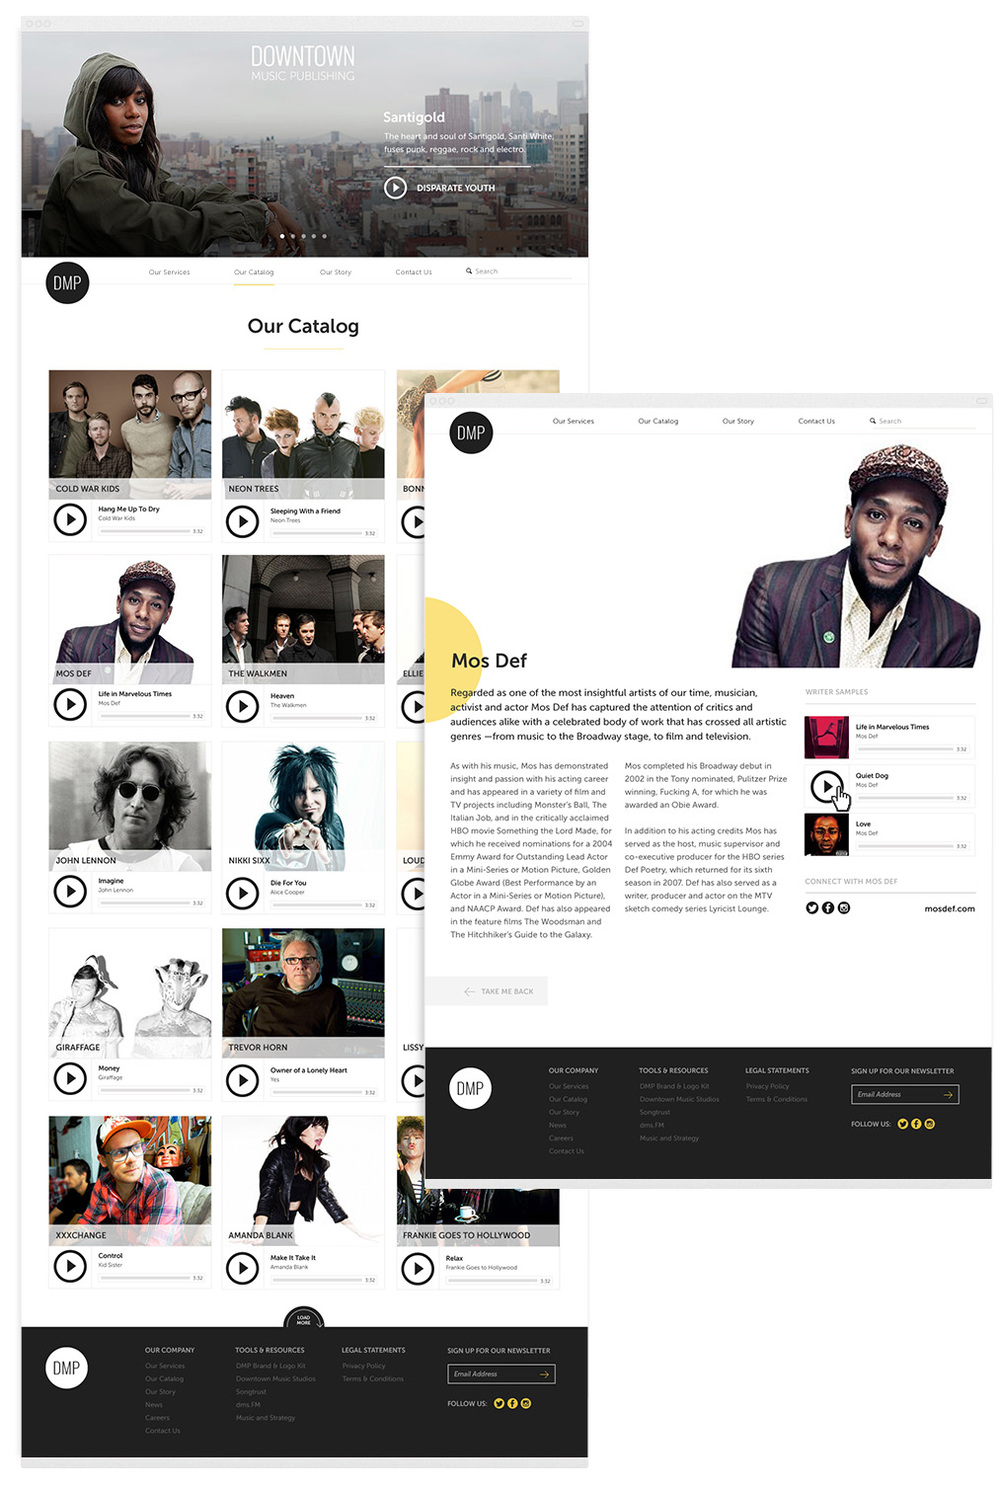 zmaic-downtown-music-publishing-dmp_responsive-web-design-strategy-music-catalog-roster-artists.jpg